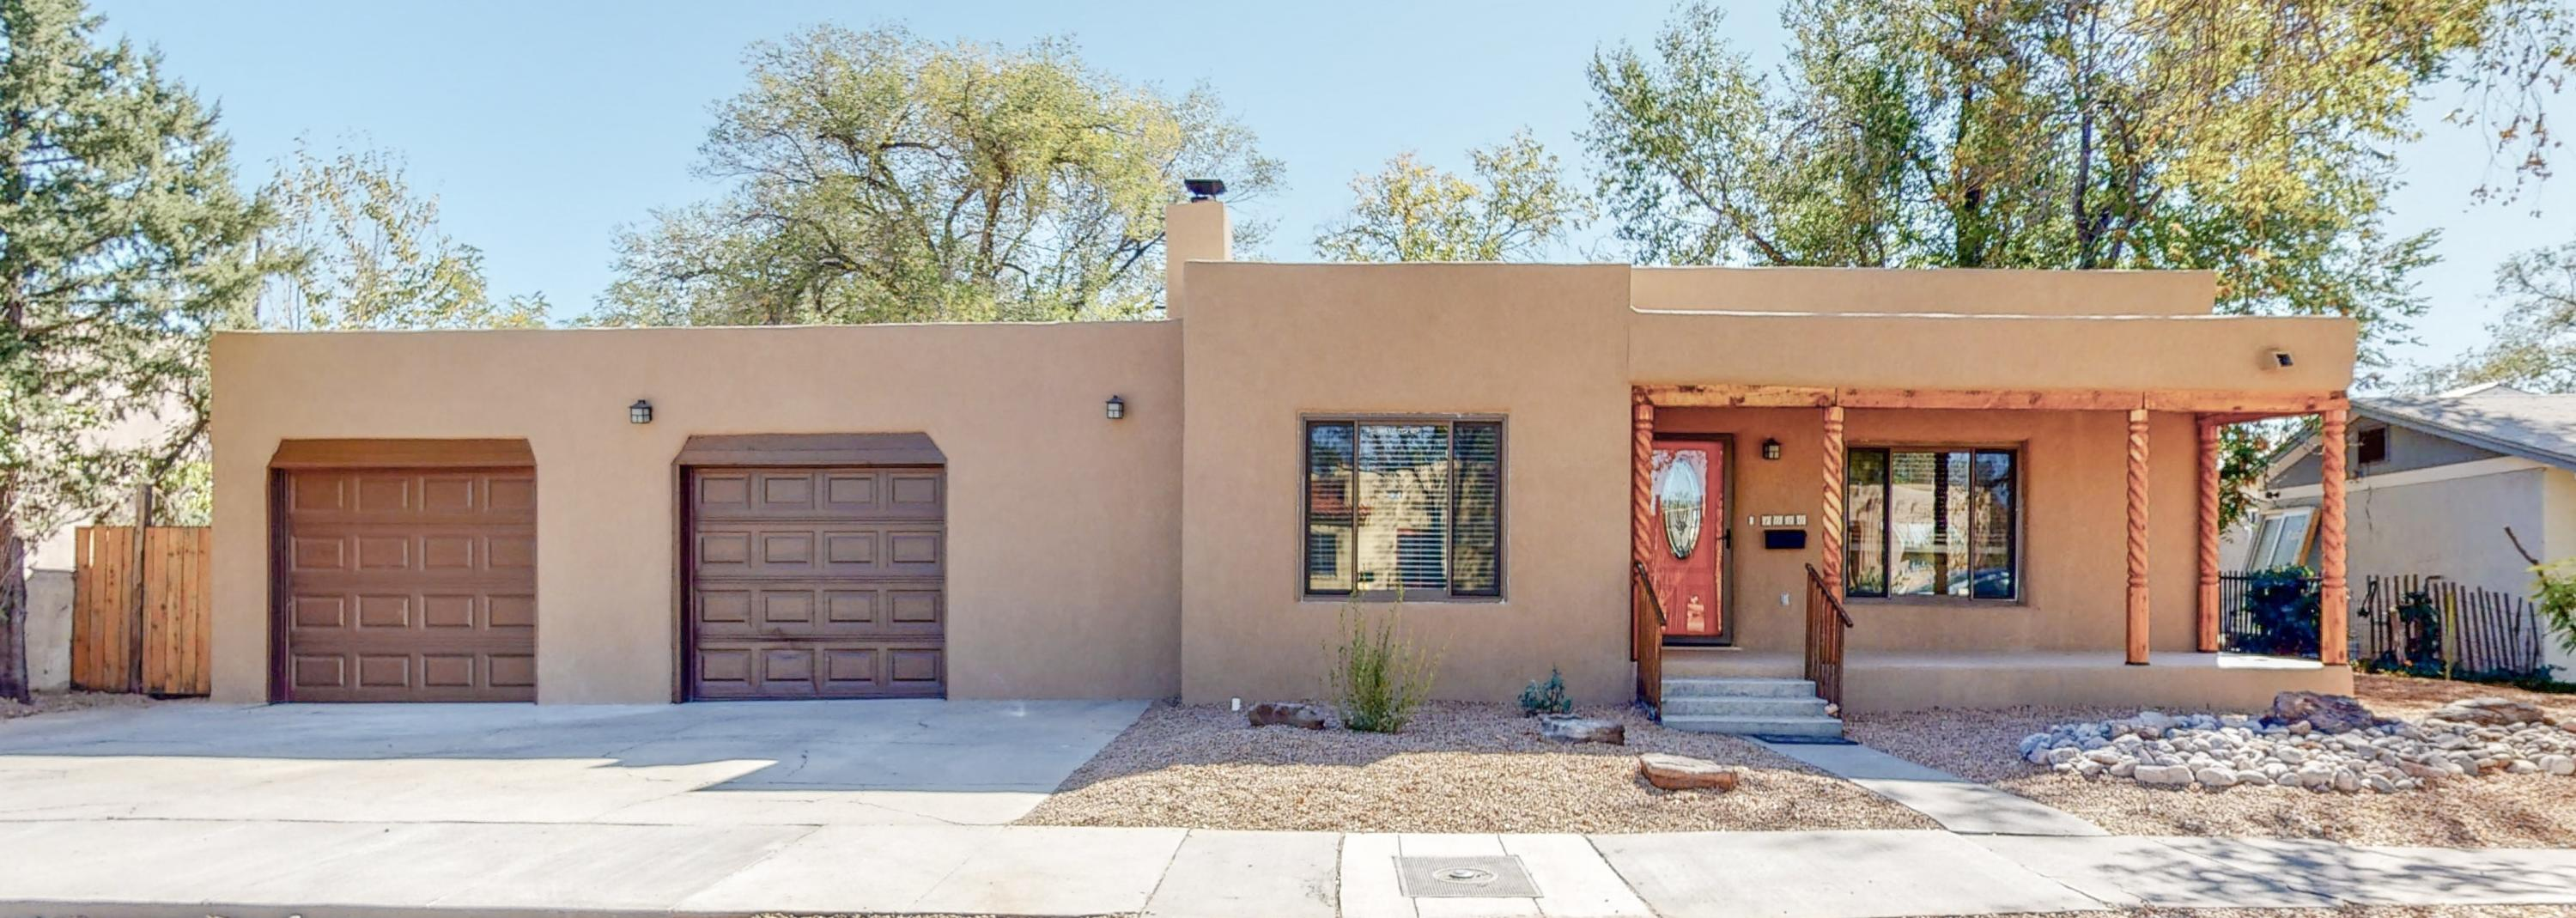 1020 MANZANO Court NW Property Photo - Albuquerque, NM real estate listing